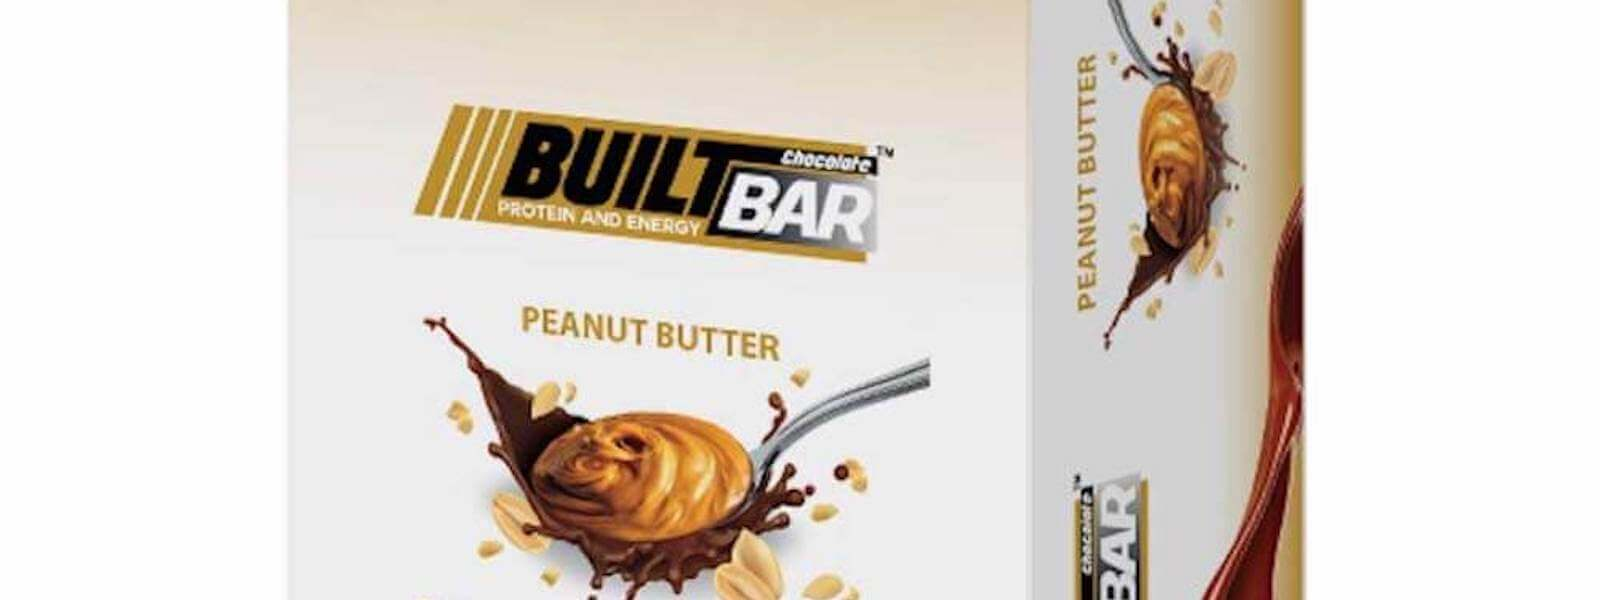 Built Bar Now Available Supplements Canada